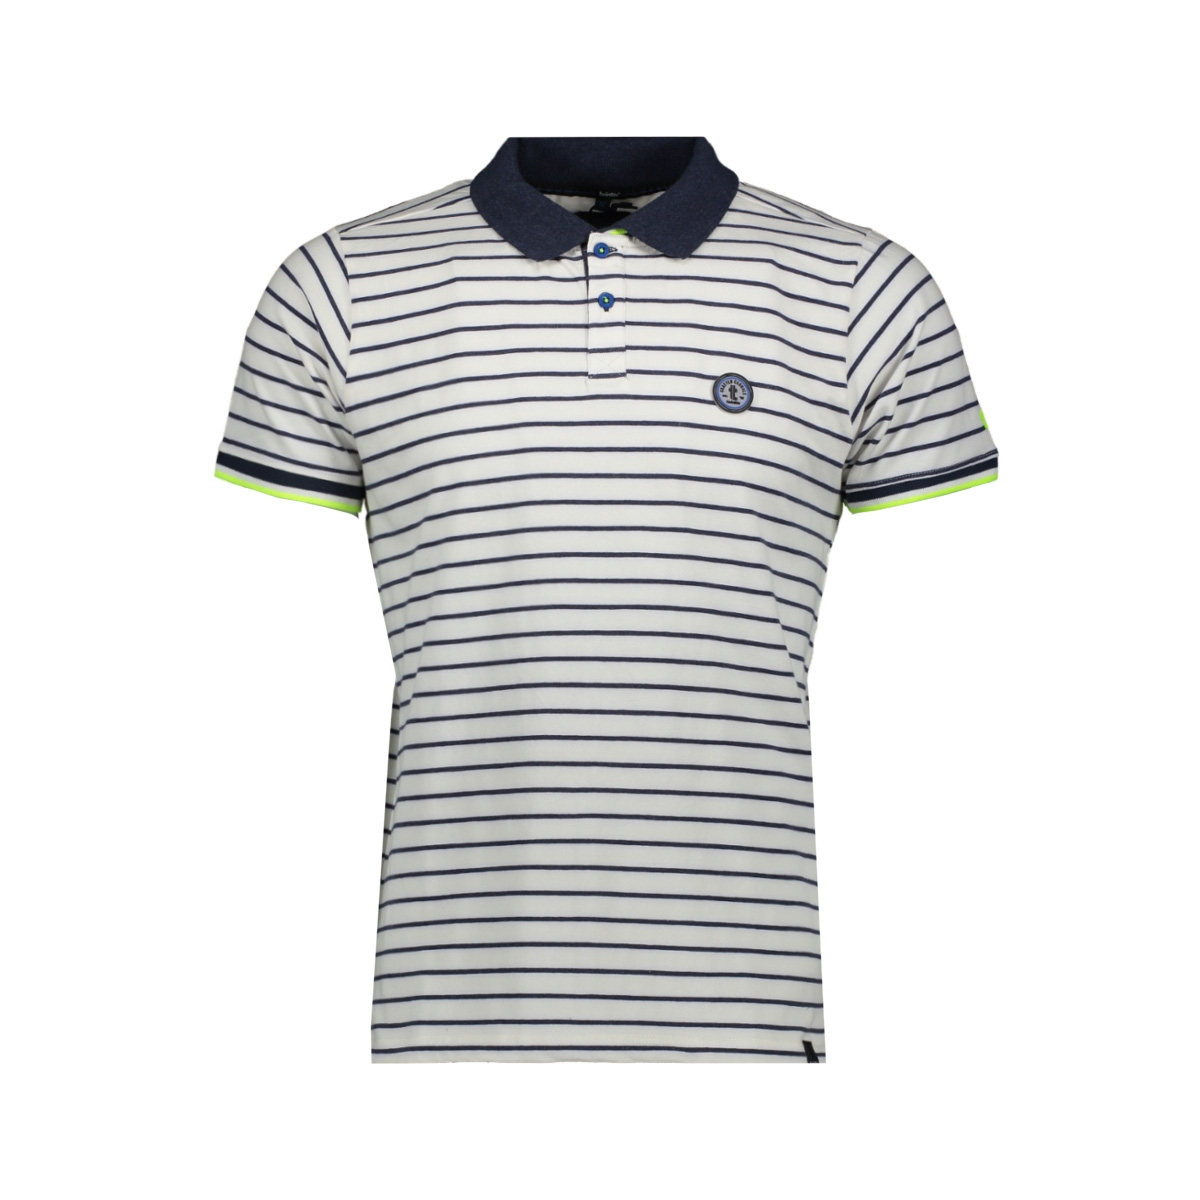 polo 1901 6108 m 1 twinlife polo 1010 blanc